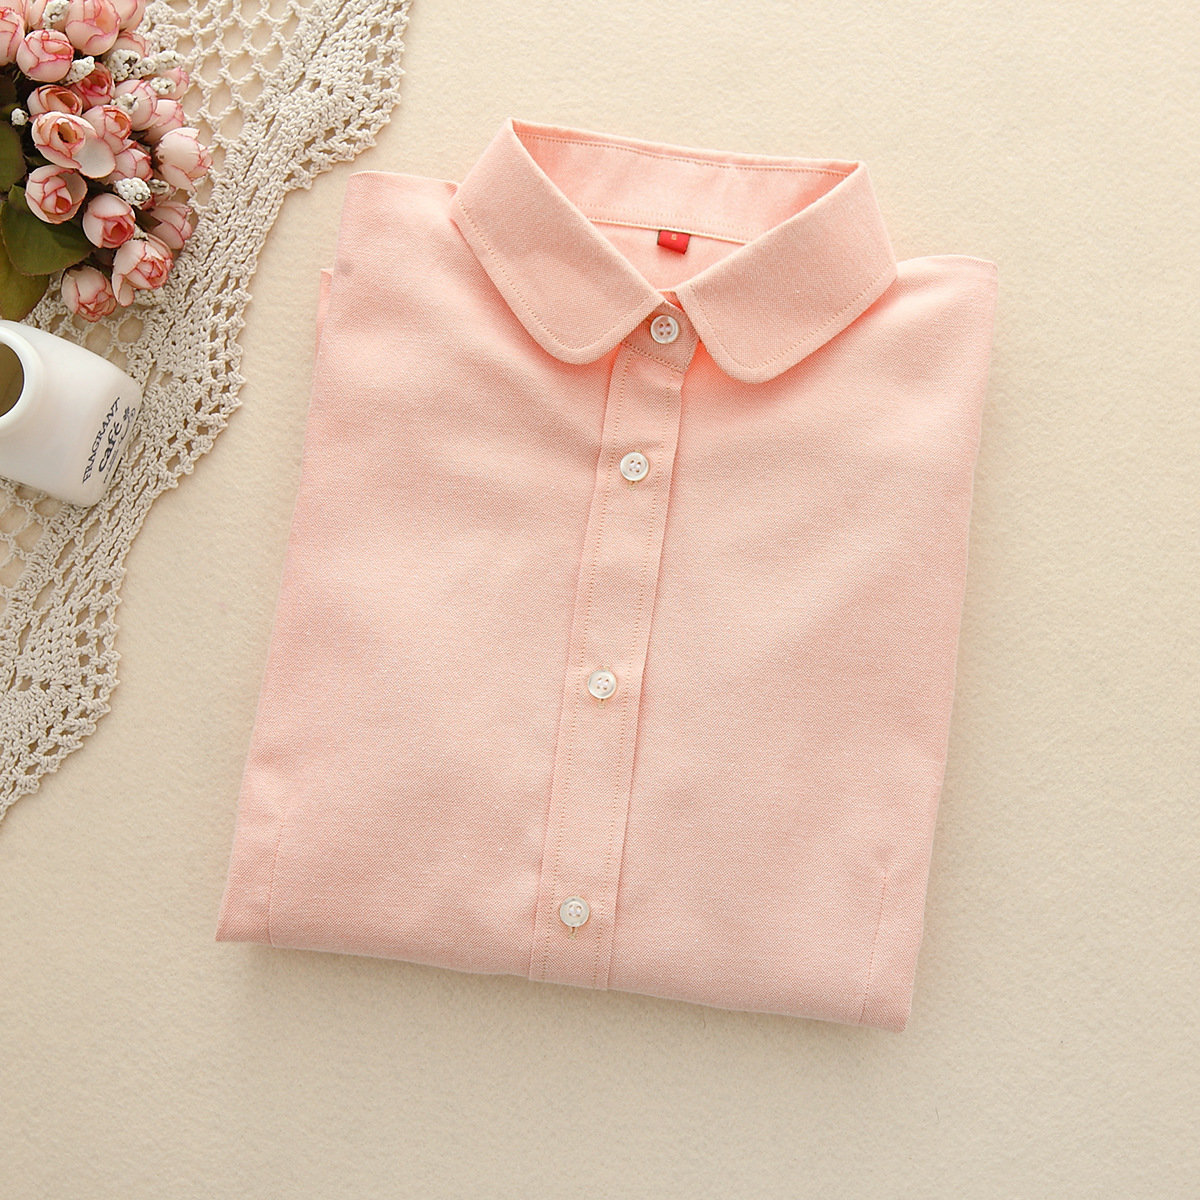 FEKEHA Women Blouses 2019 Long Sleeve Cotton Oxford Ladies Tops Office Long Sleeve Shirts Women Blusas Camisas Mujer